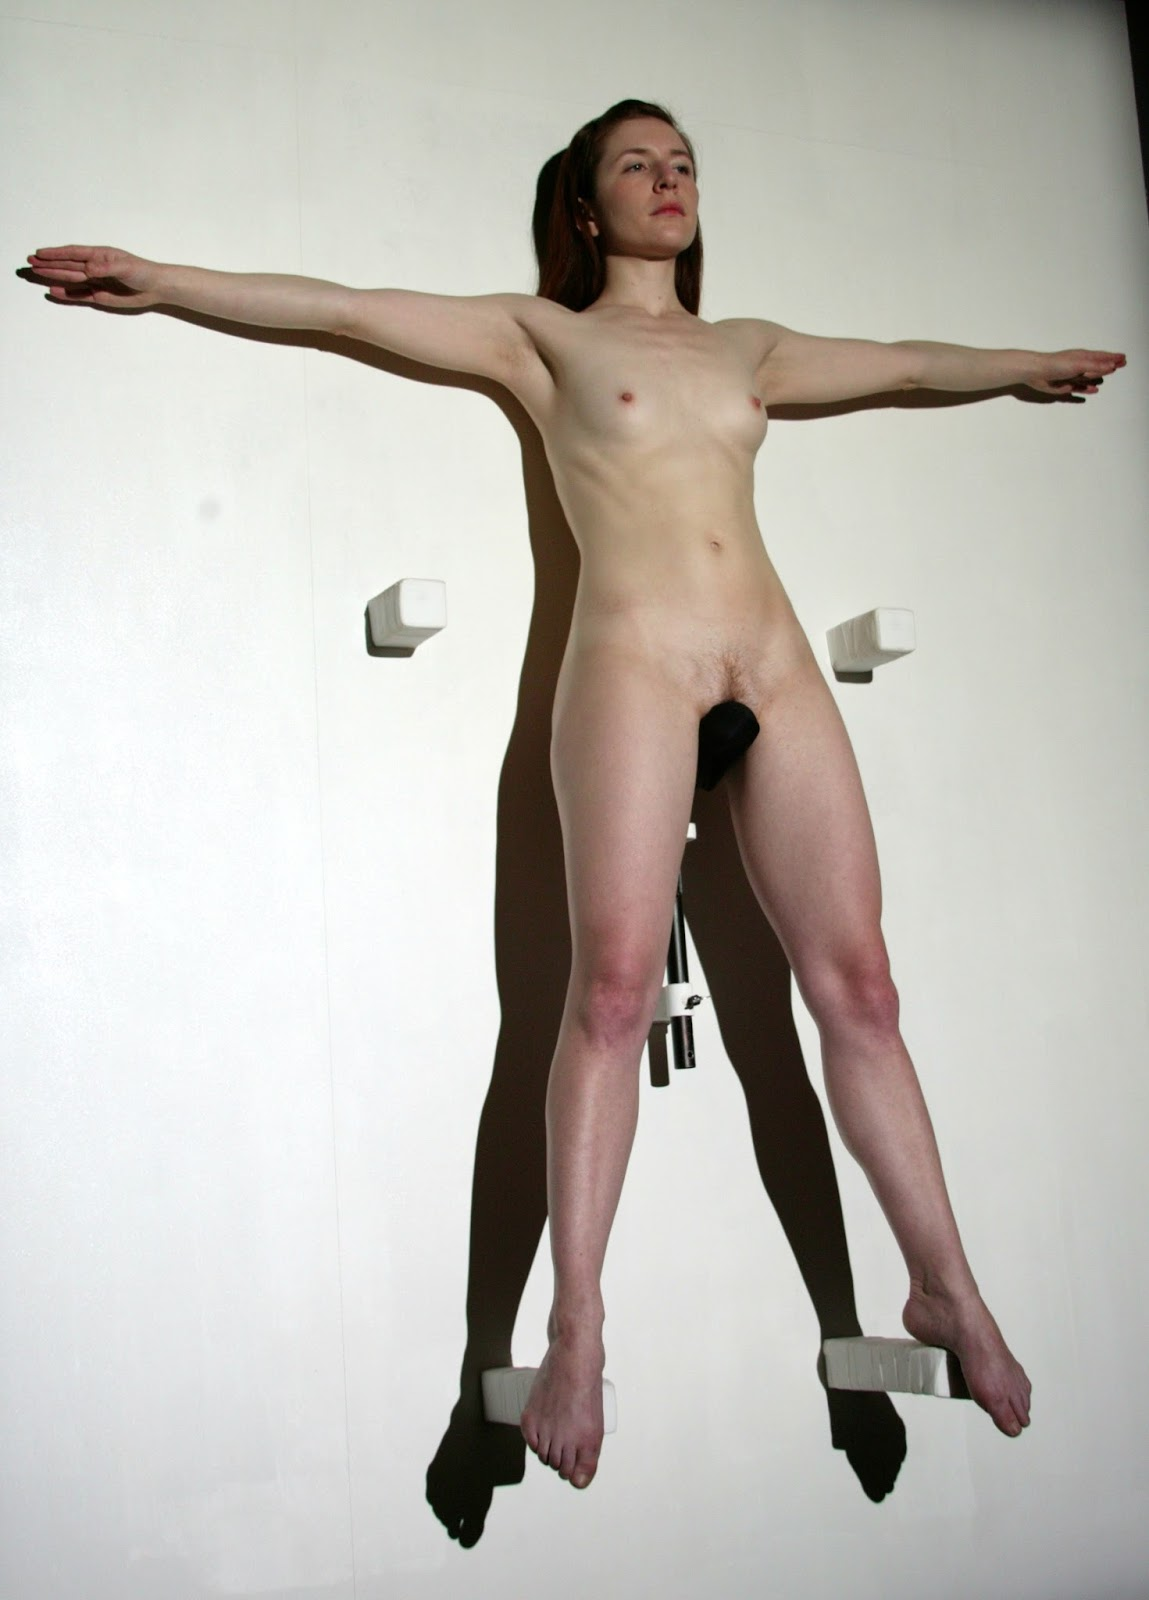 Marina Abramovic performance, Luminosity (1997)